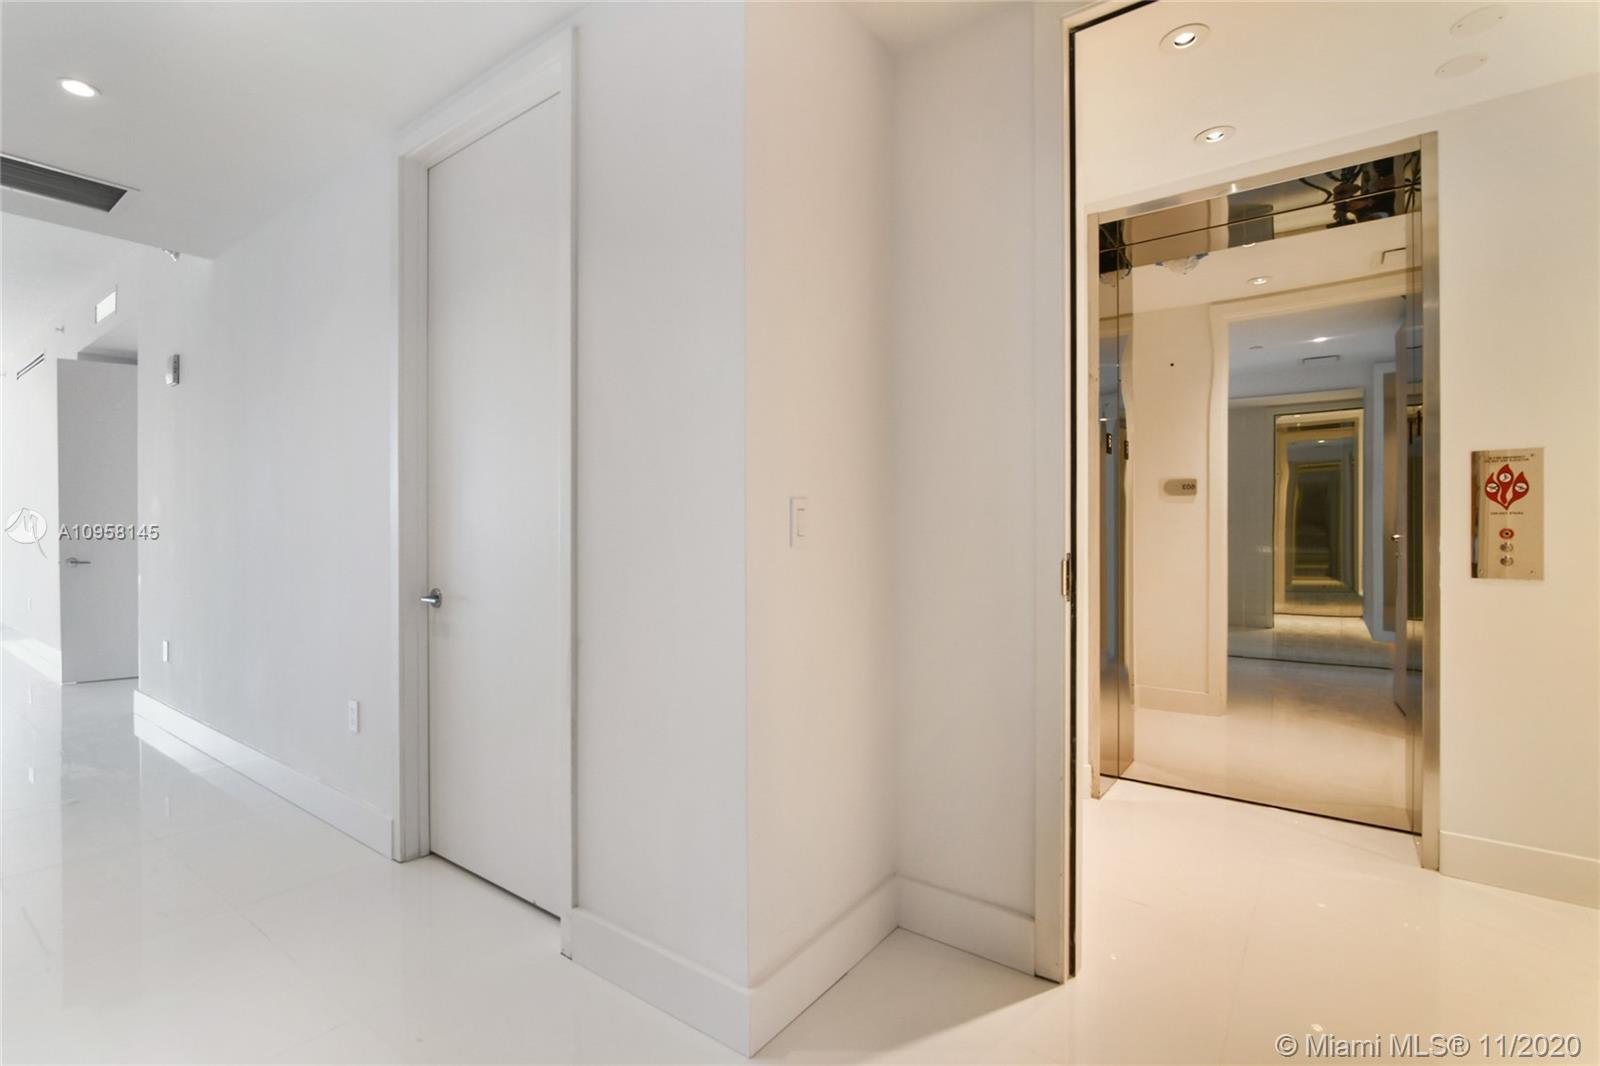 Enjoy an incomparable lifestyle of understated elegance exclusively offered at the newly completed R